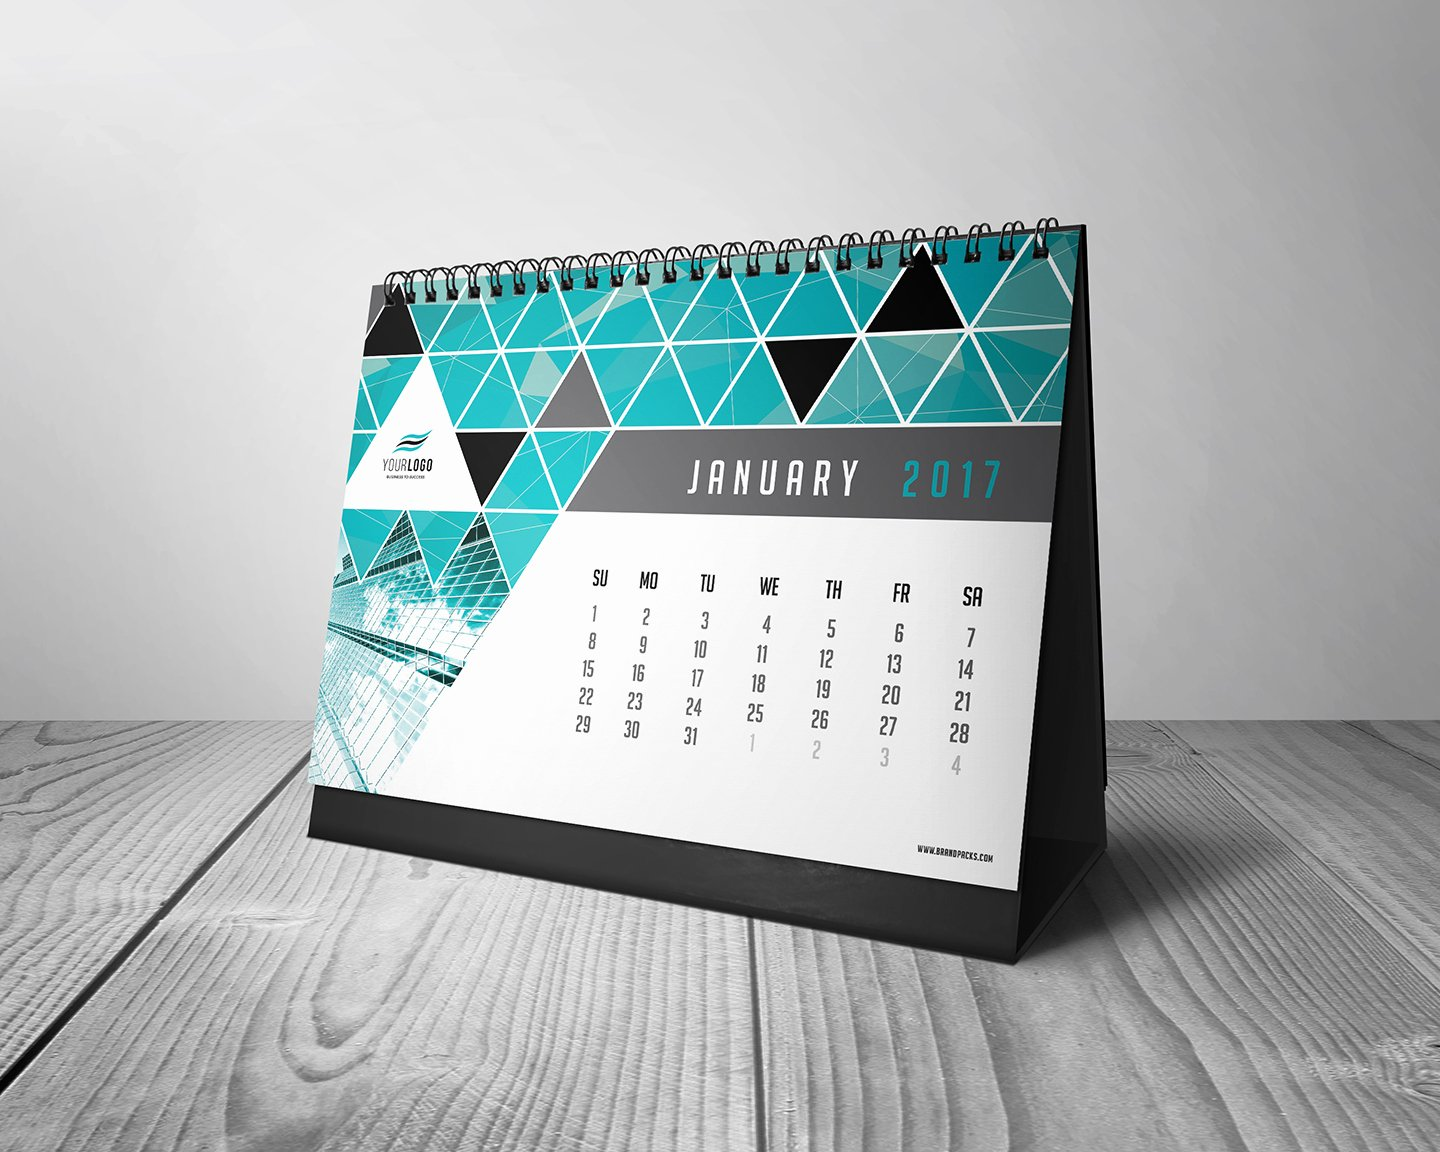 Photoshop Calendar Template 2017 Awesome Free Calendar Template for Shop & Illustrator